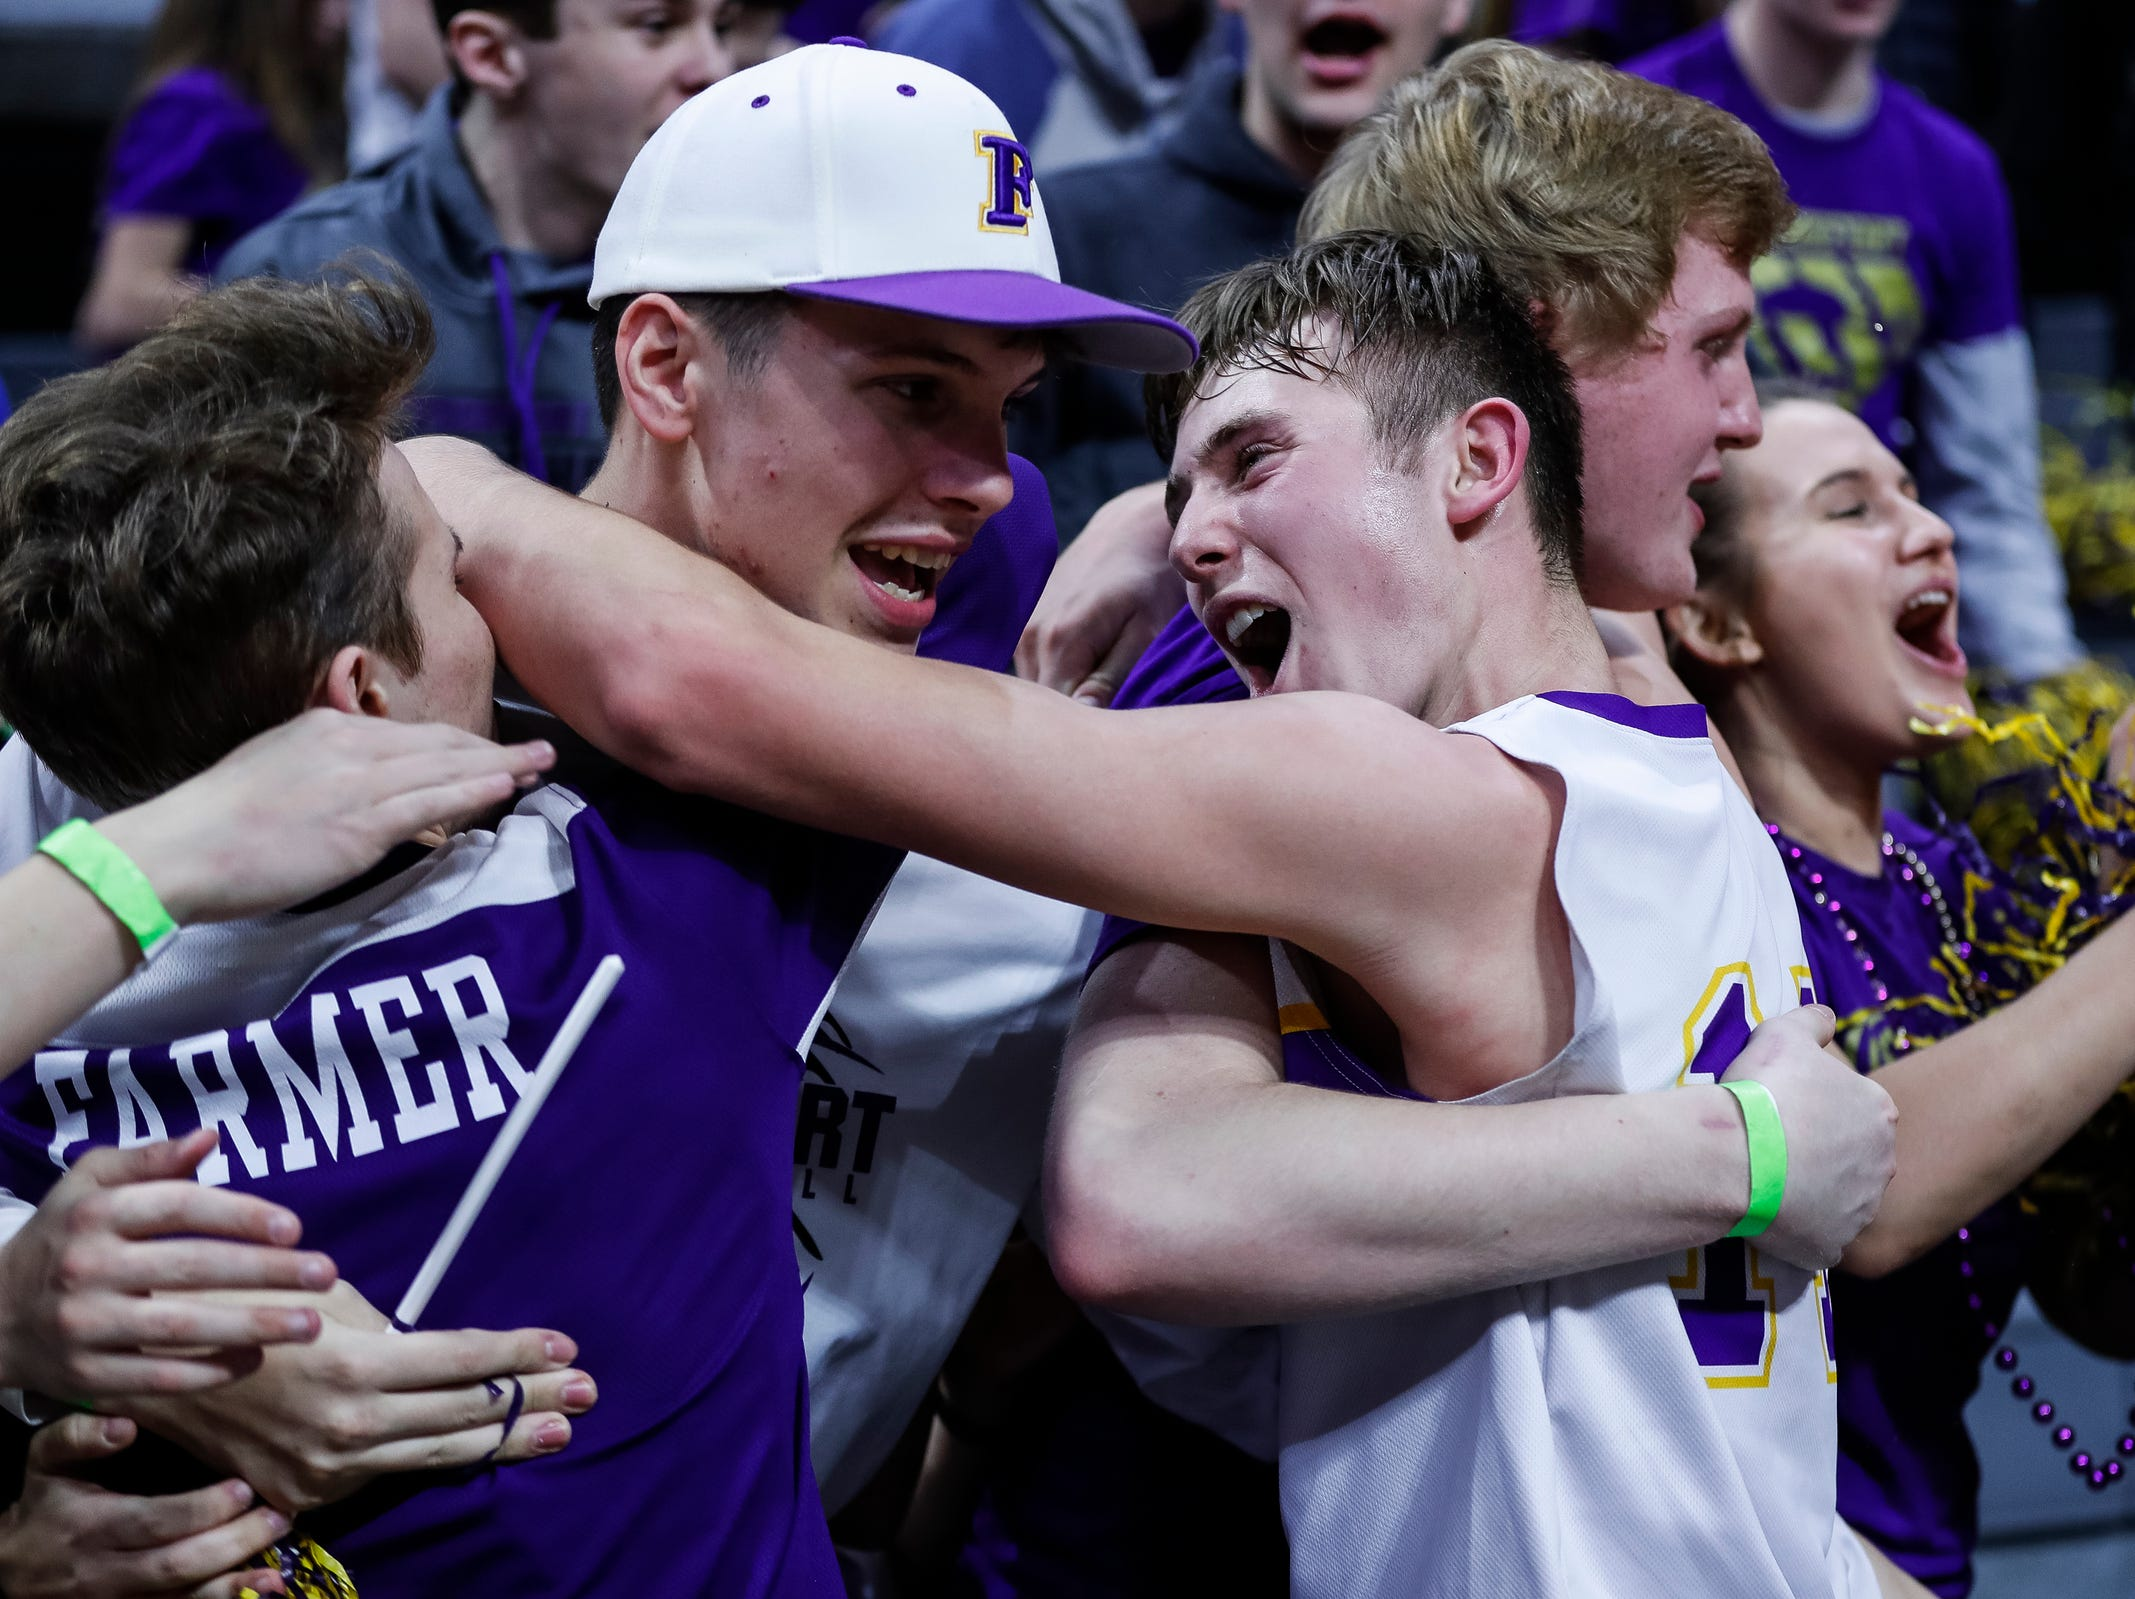 Frankfort players and fans celebrate their 44-43 win over Wyoming Tri-unity Christian at the MHSAA Division 4 semifinal at the Breslin Center in East Lansing, Thursday, March 14, 2019.